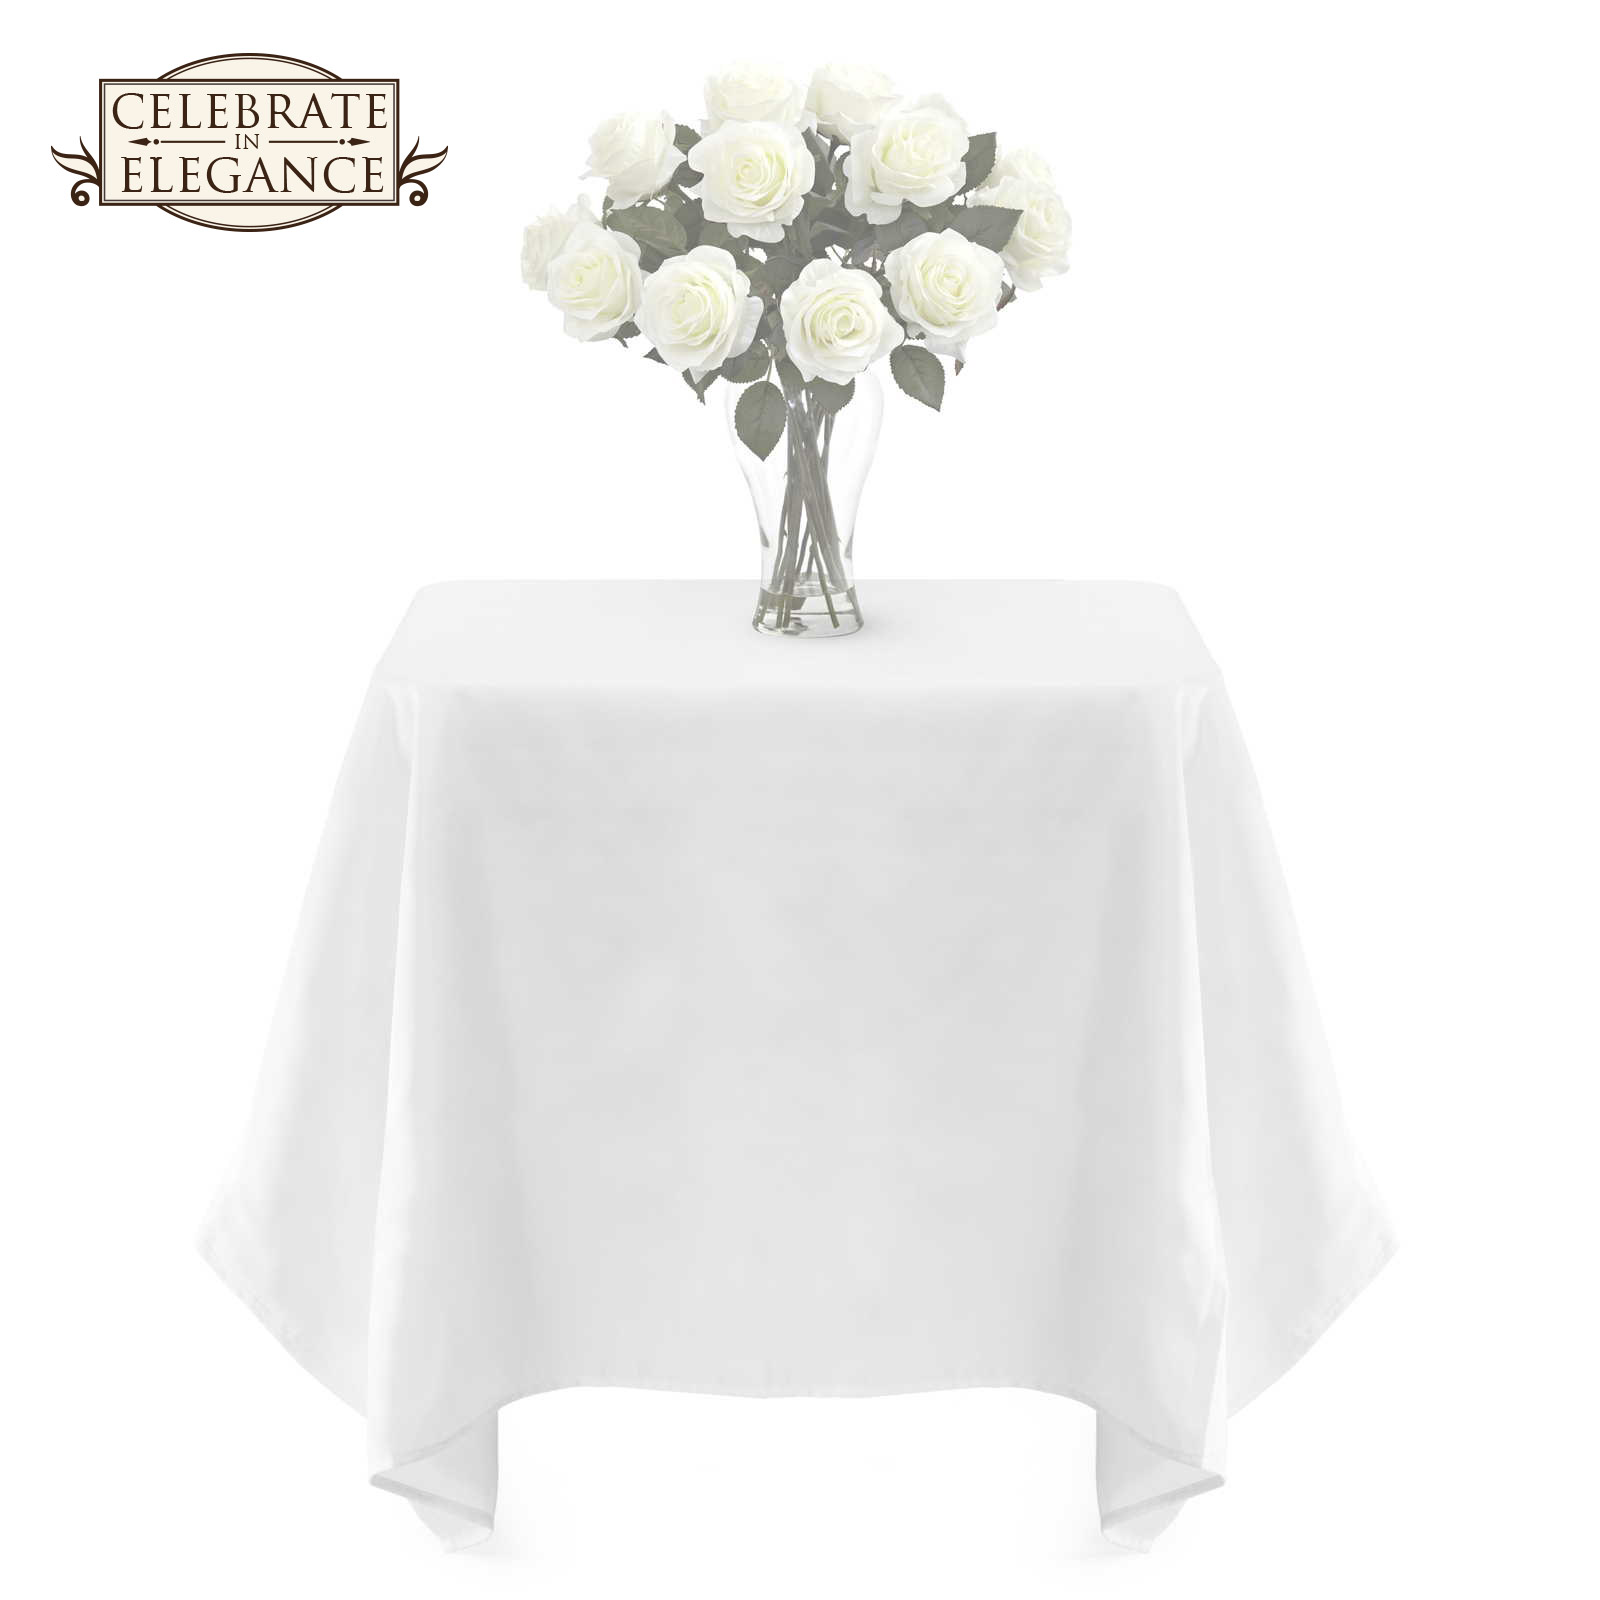 54 inch Square Tablecloth Seamless Wedding Party Linens  : 10750 mark from www.ebay.com size 1600 x 1600 jpeg 86kB